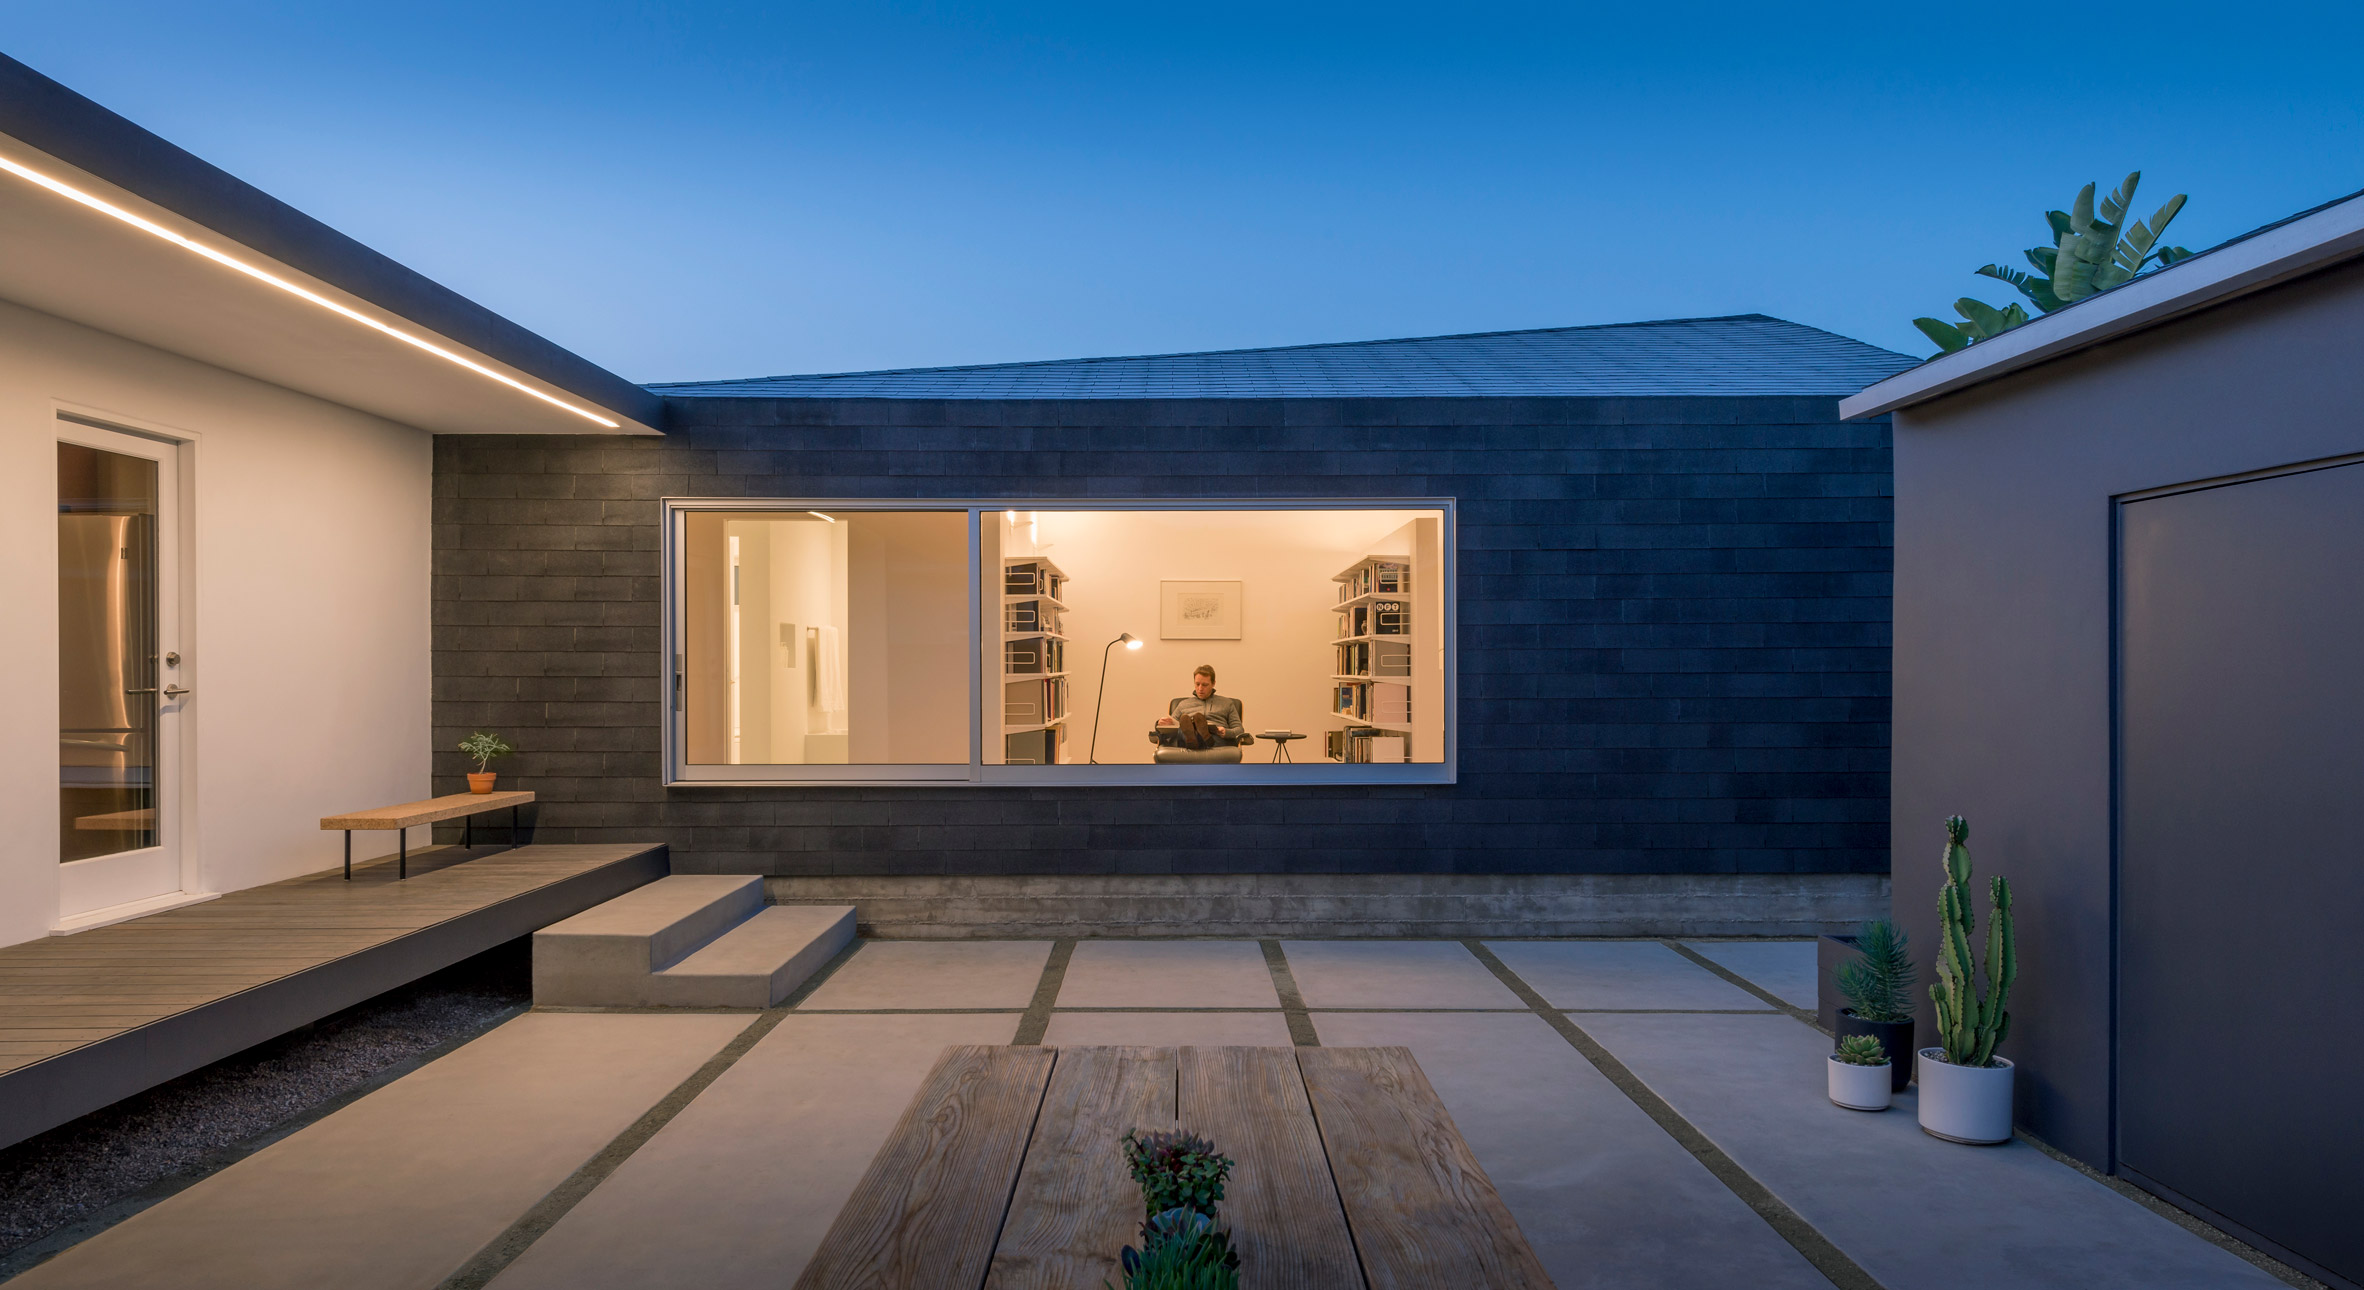 Edward Ogosta brightens Californian bungalow with Rear Window House extension